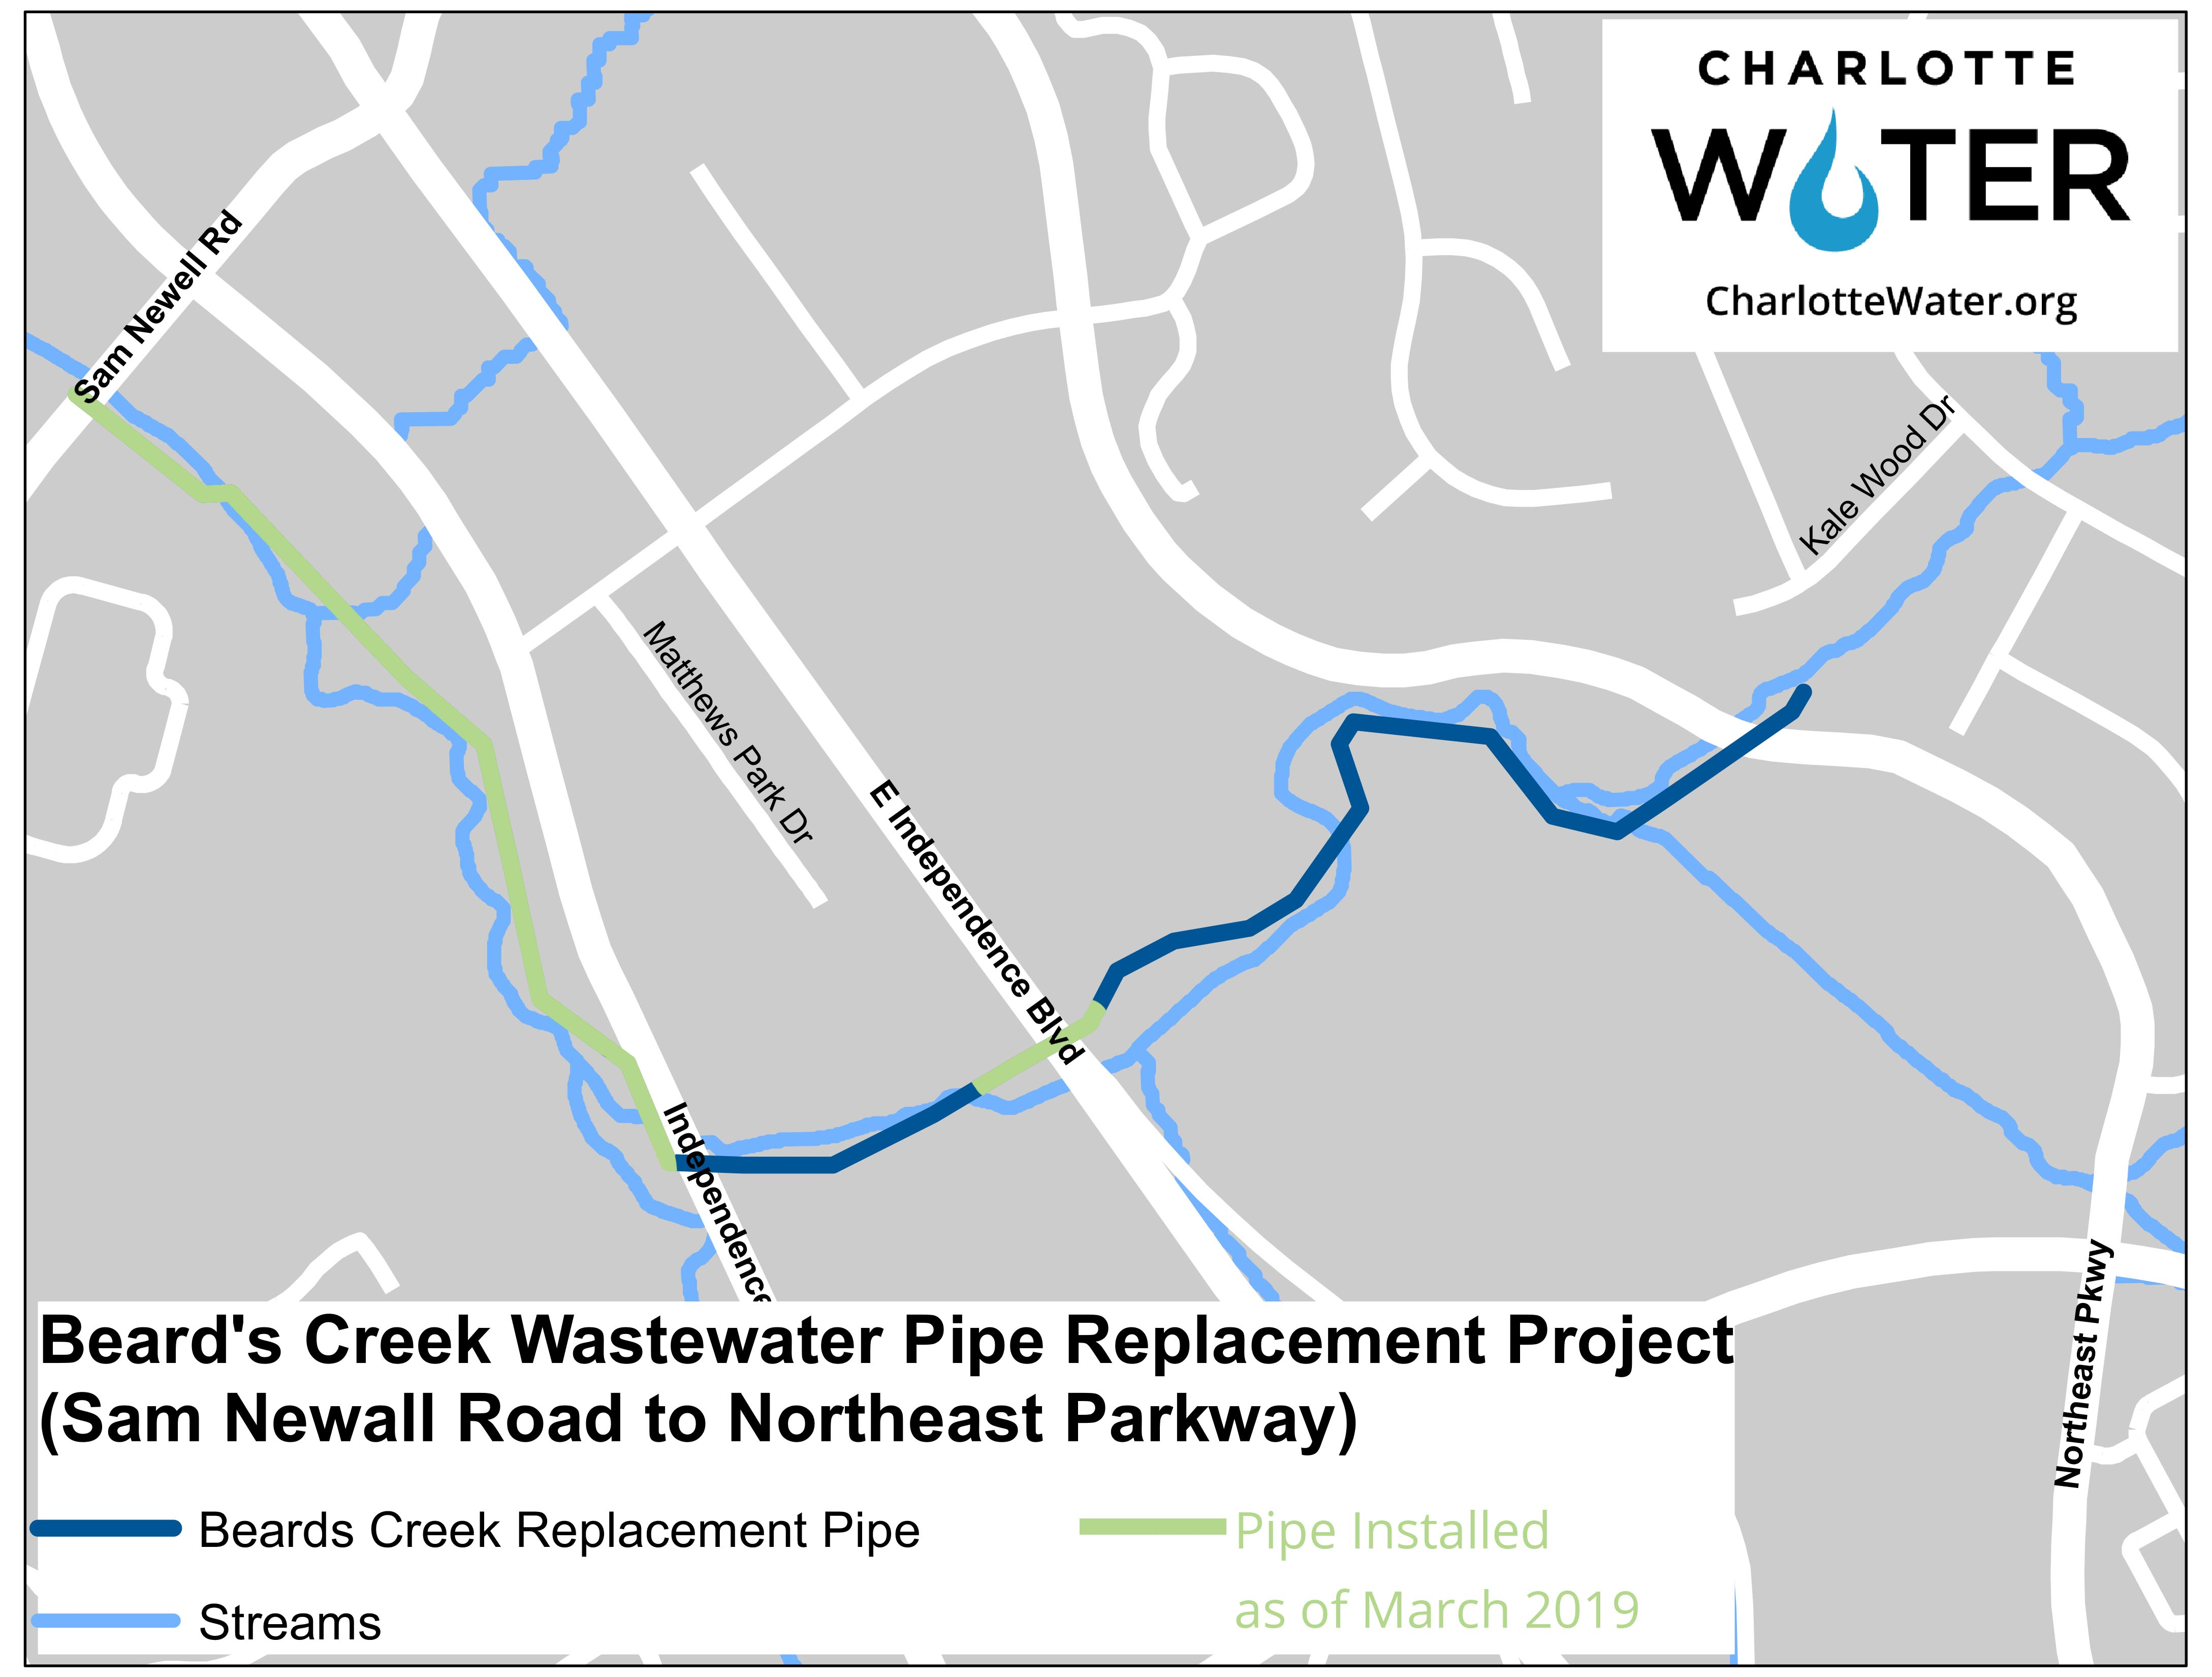 Construction Map showing the wastewater replacement construction